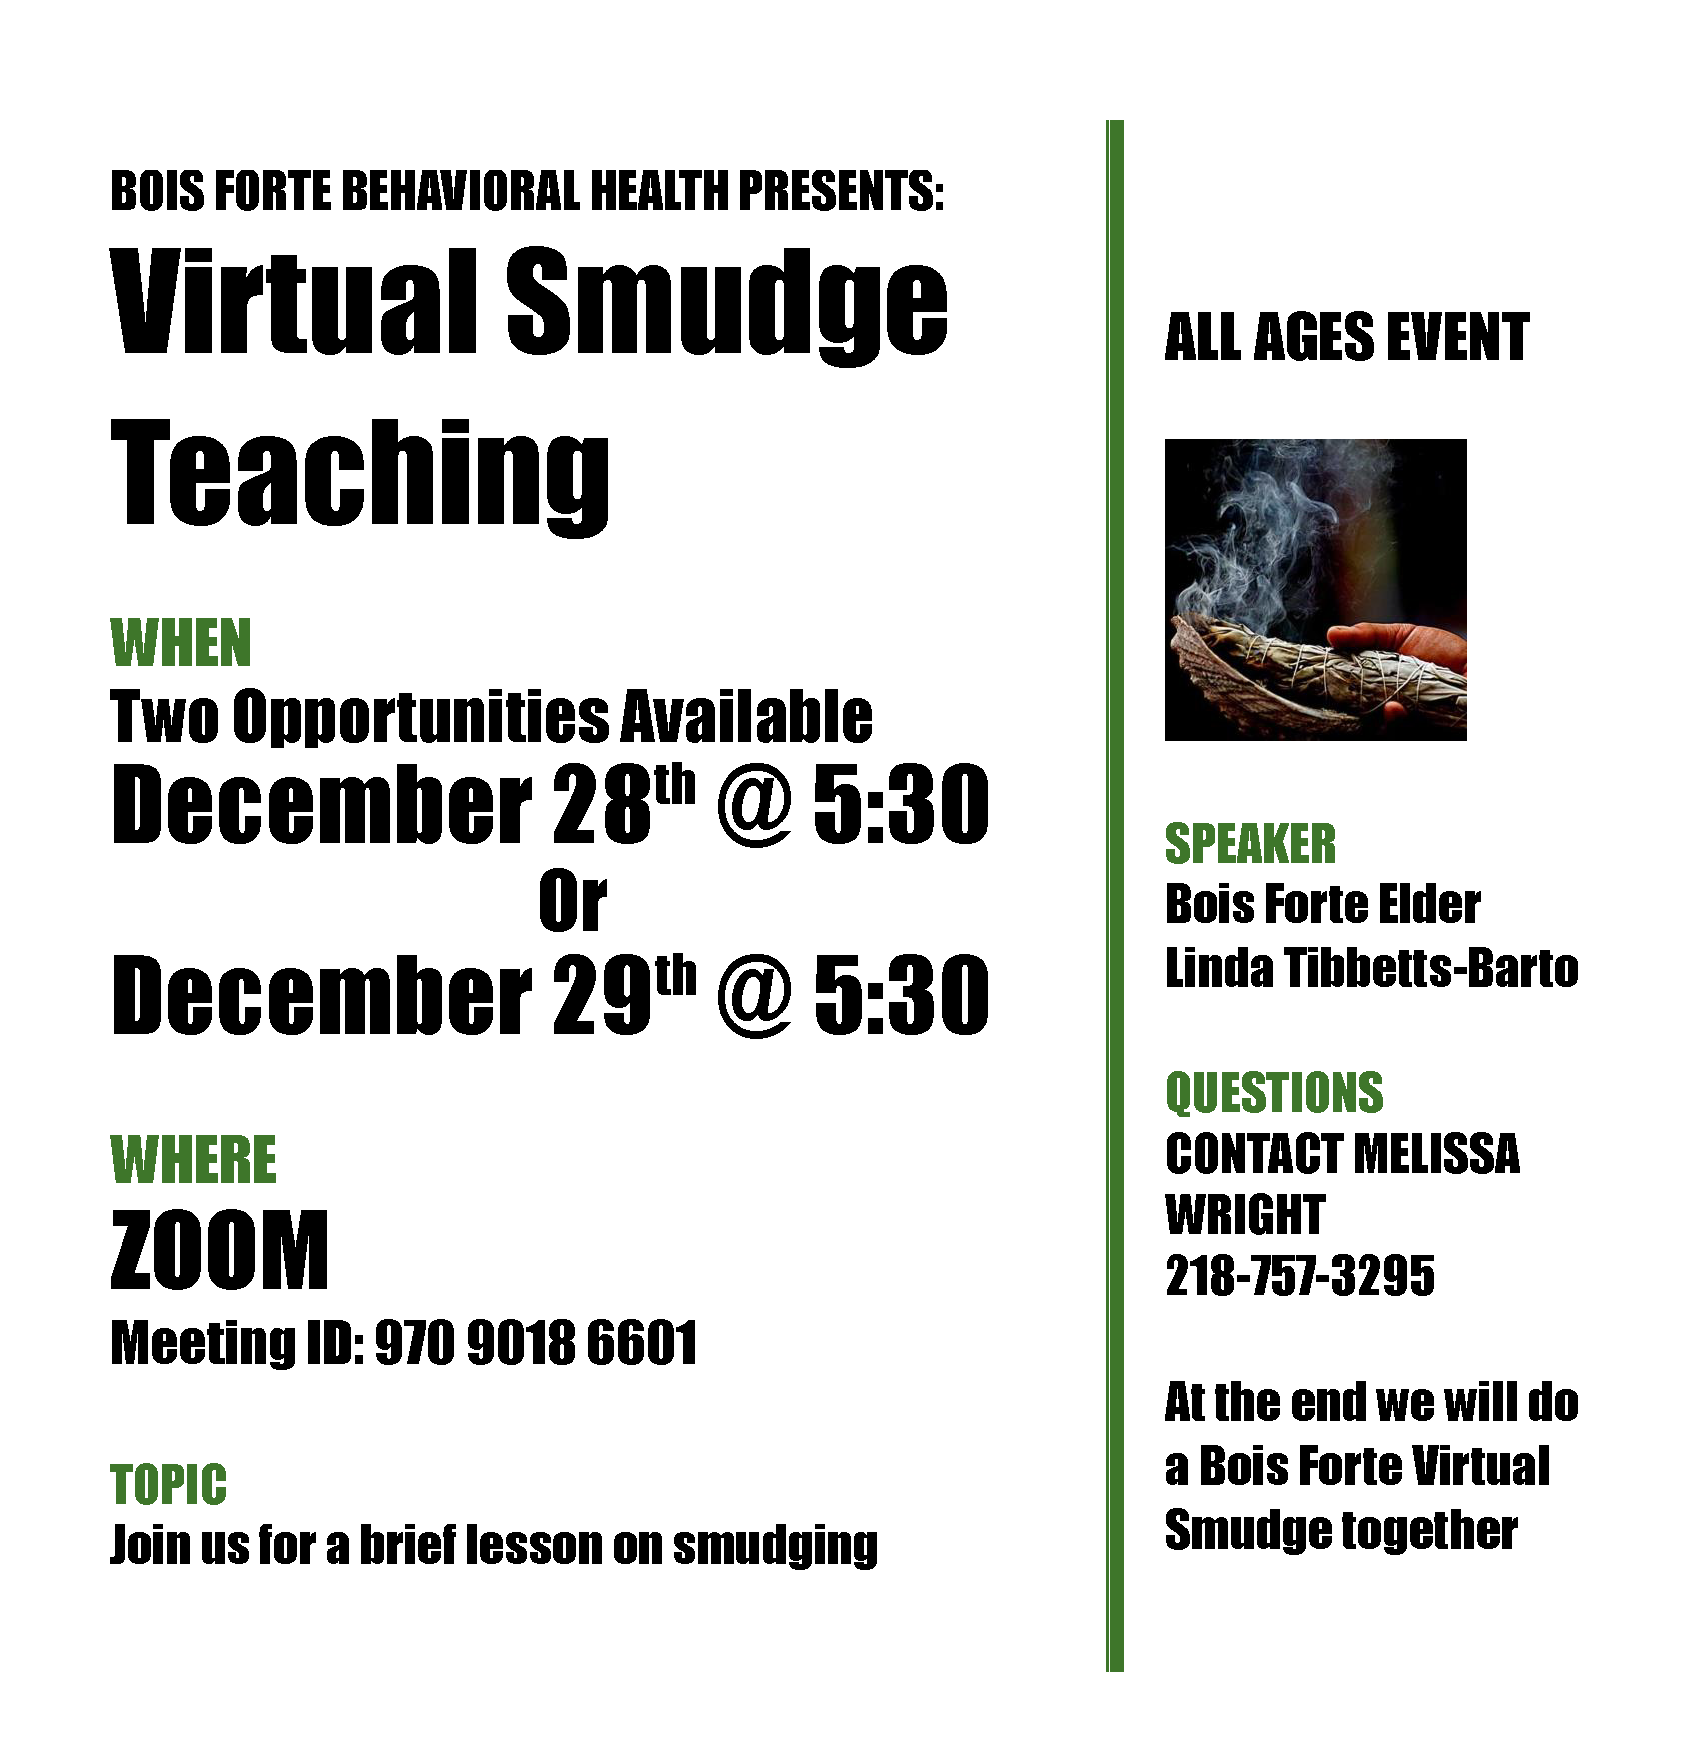 Virtual Smudge Teaching